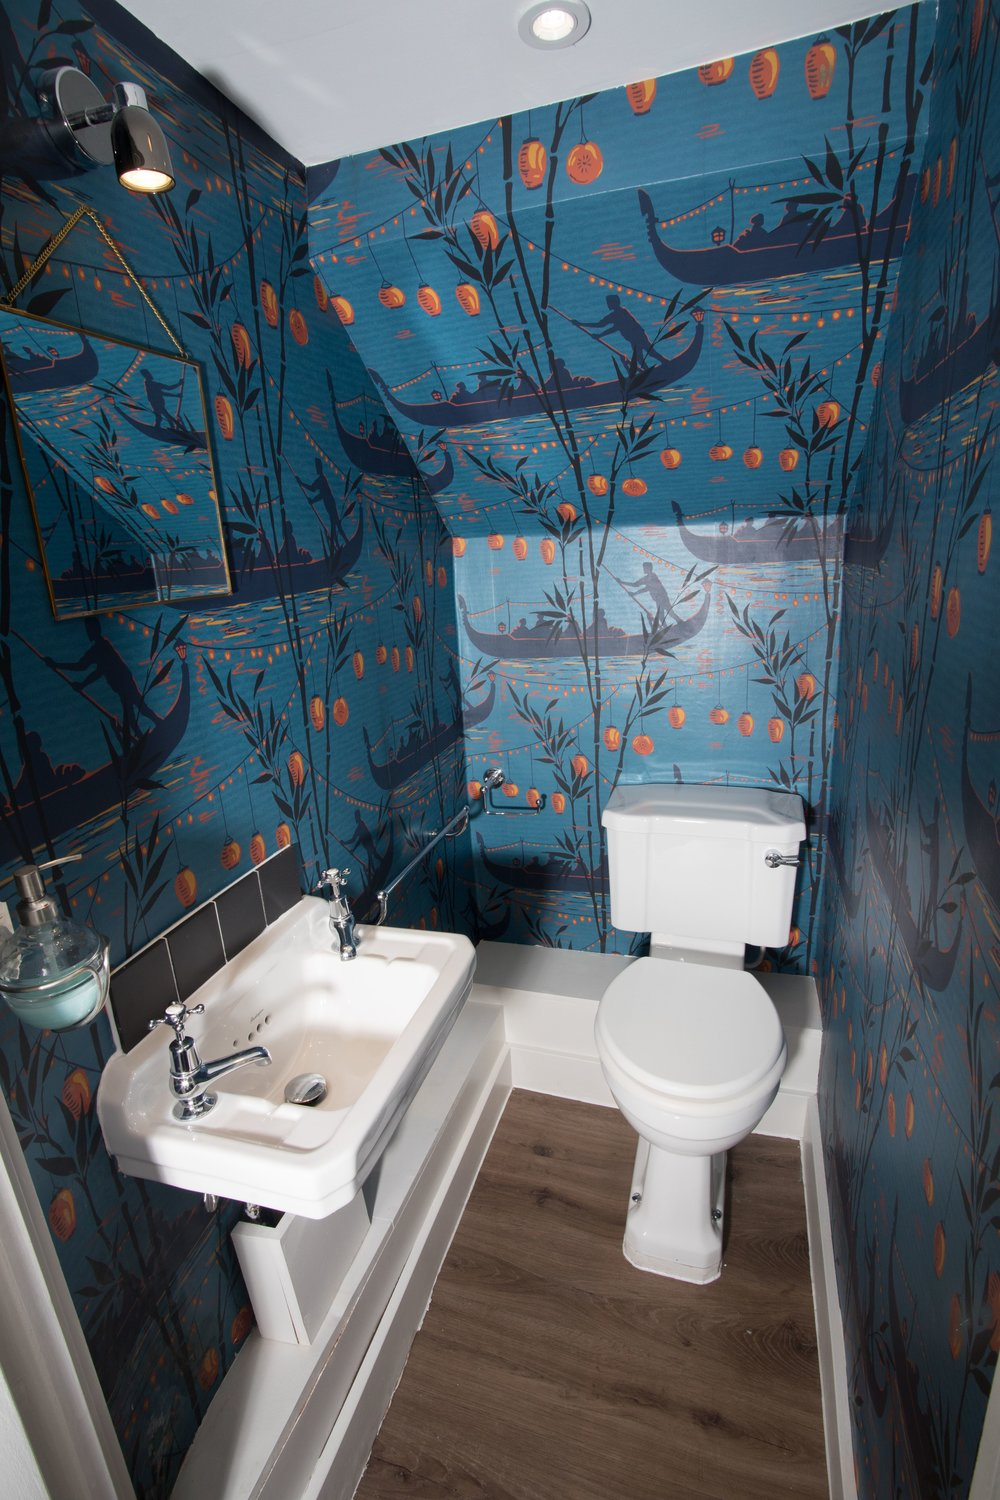 Downstairs toilet 1.jpg